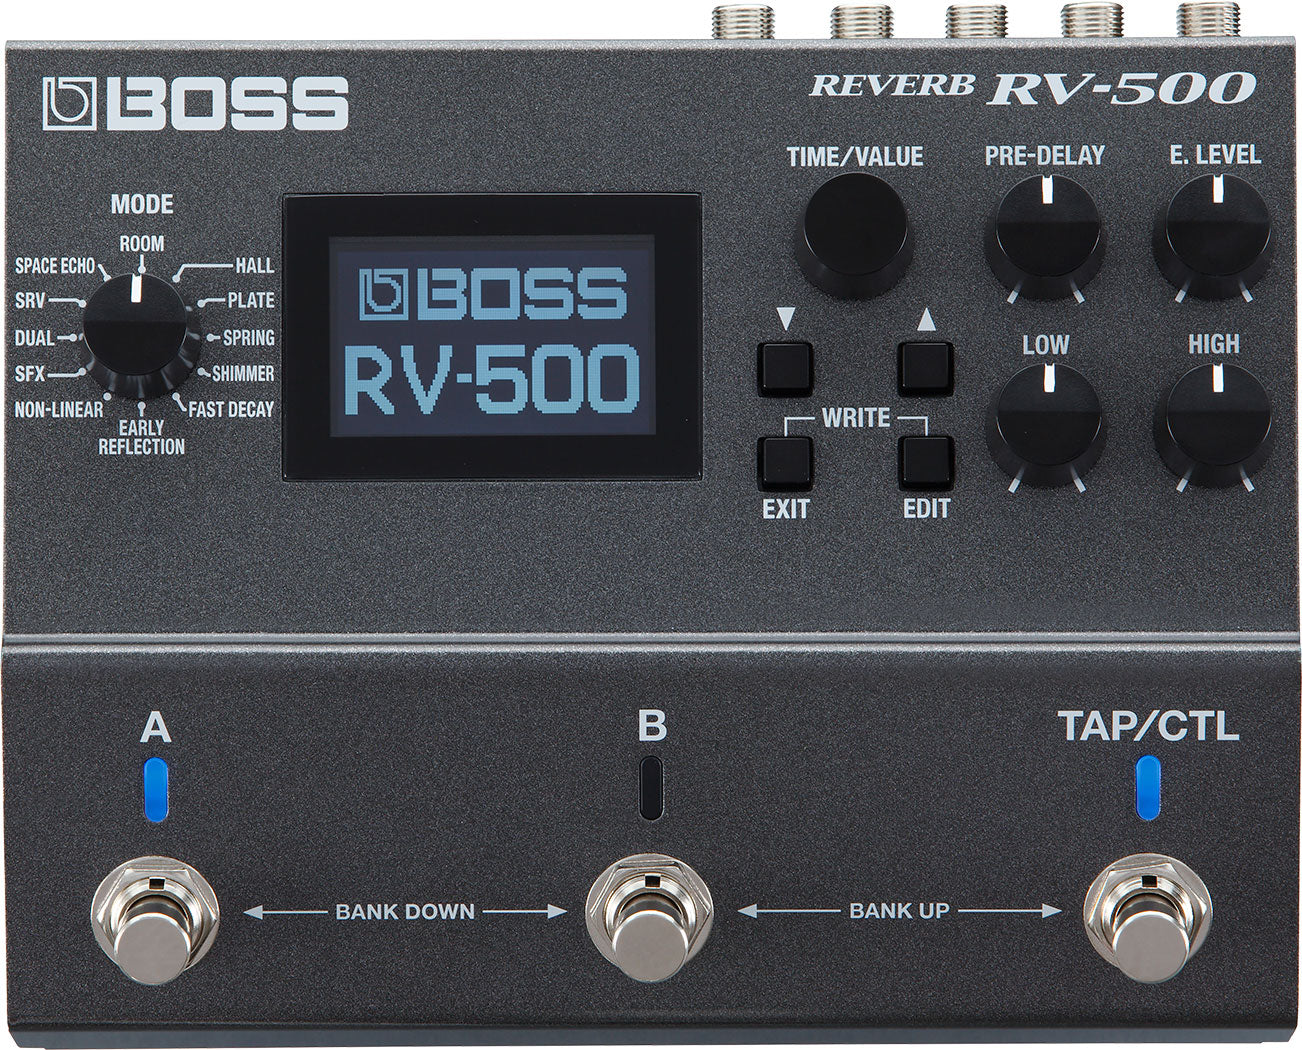 BOSS RV-500 - REVERB